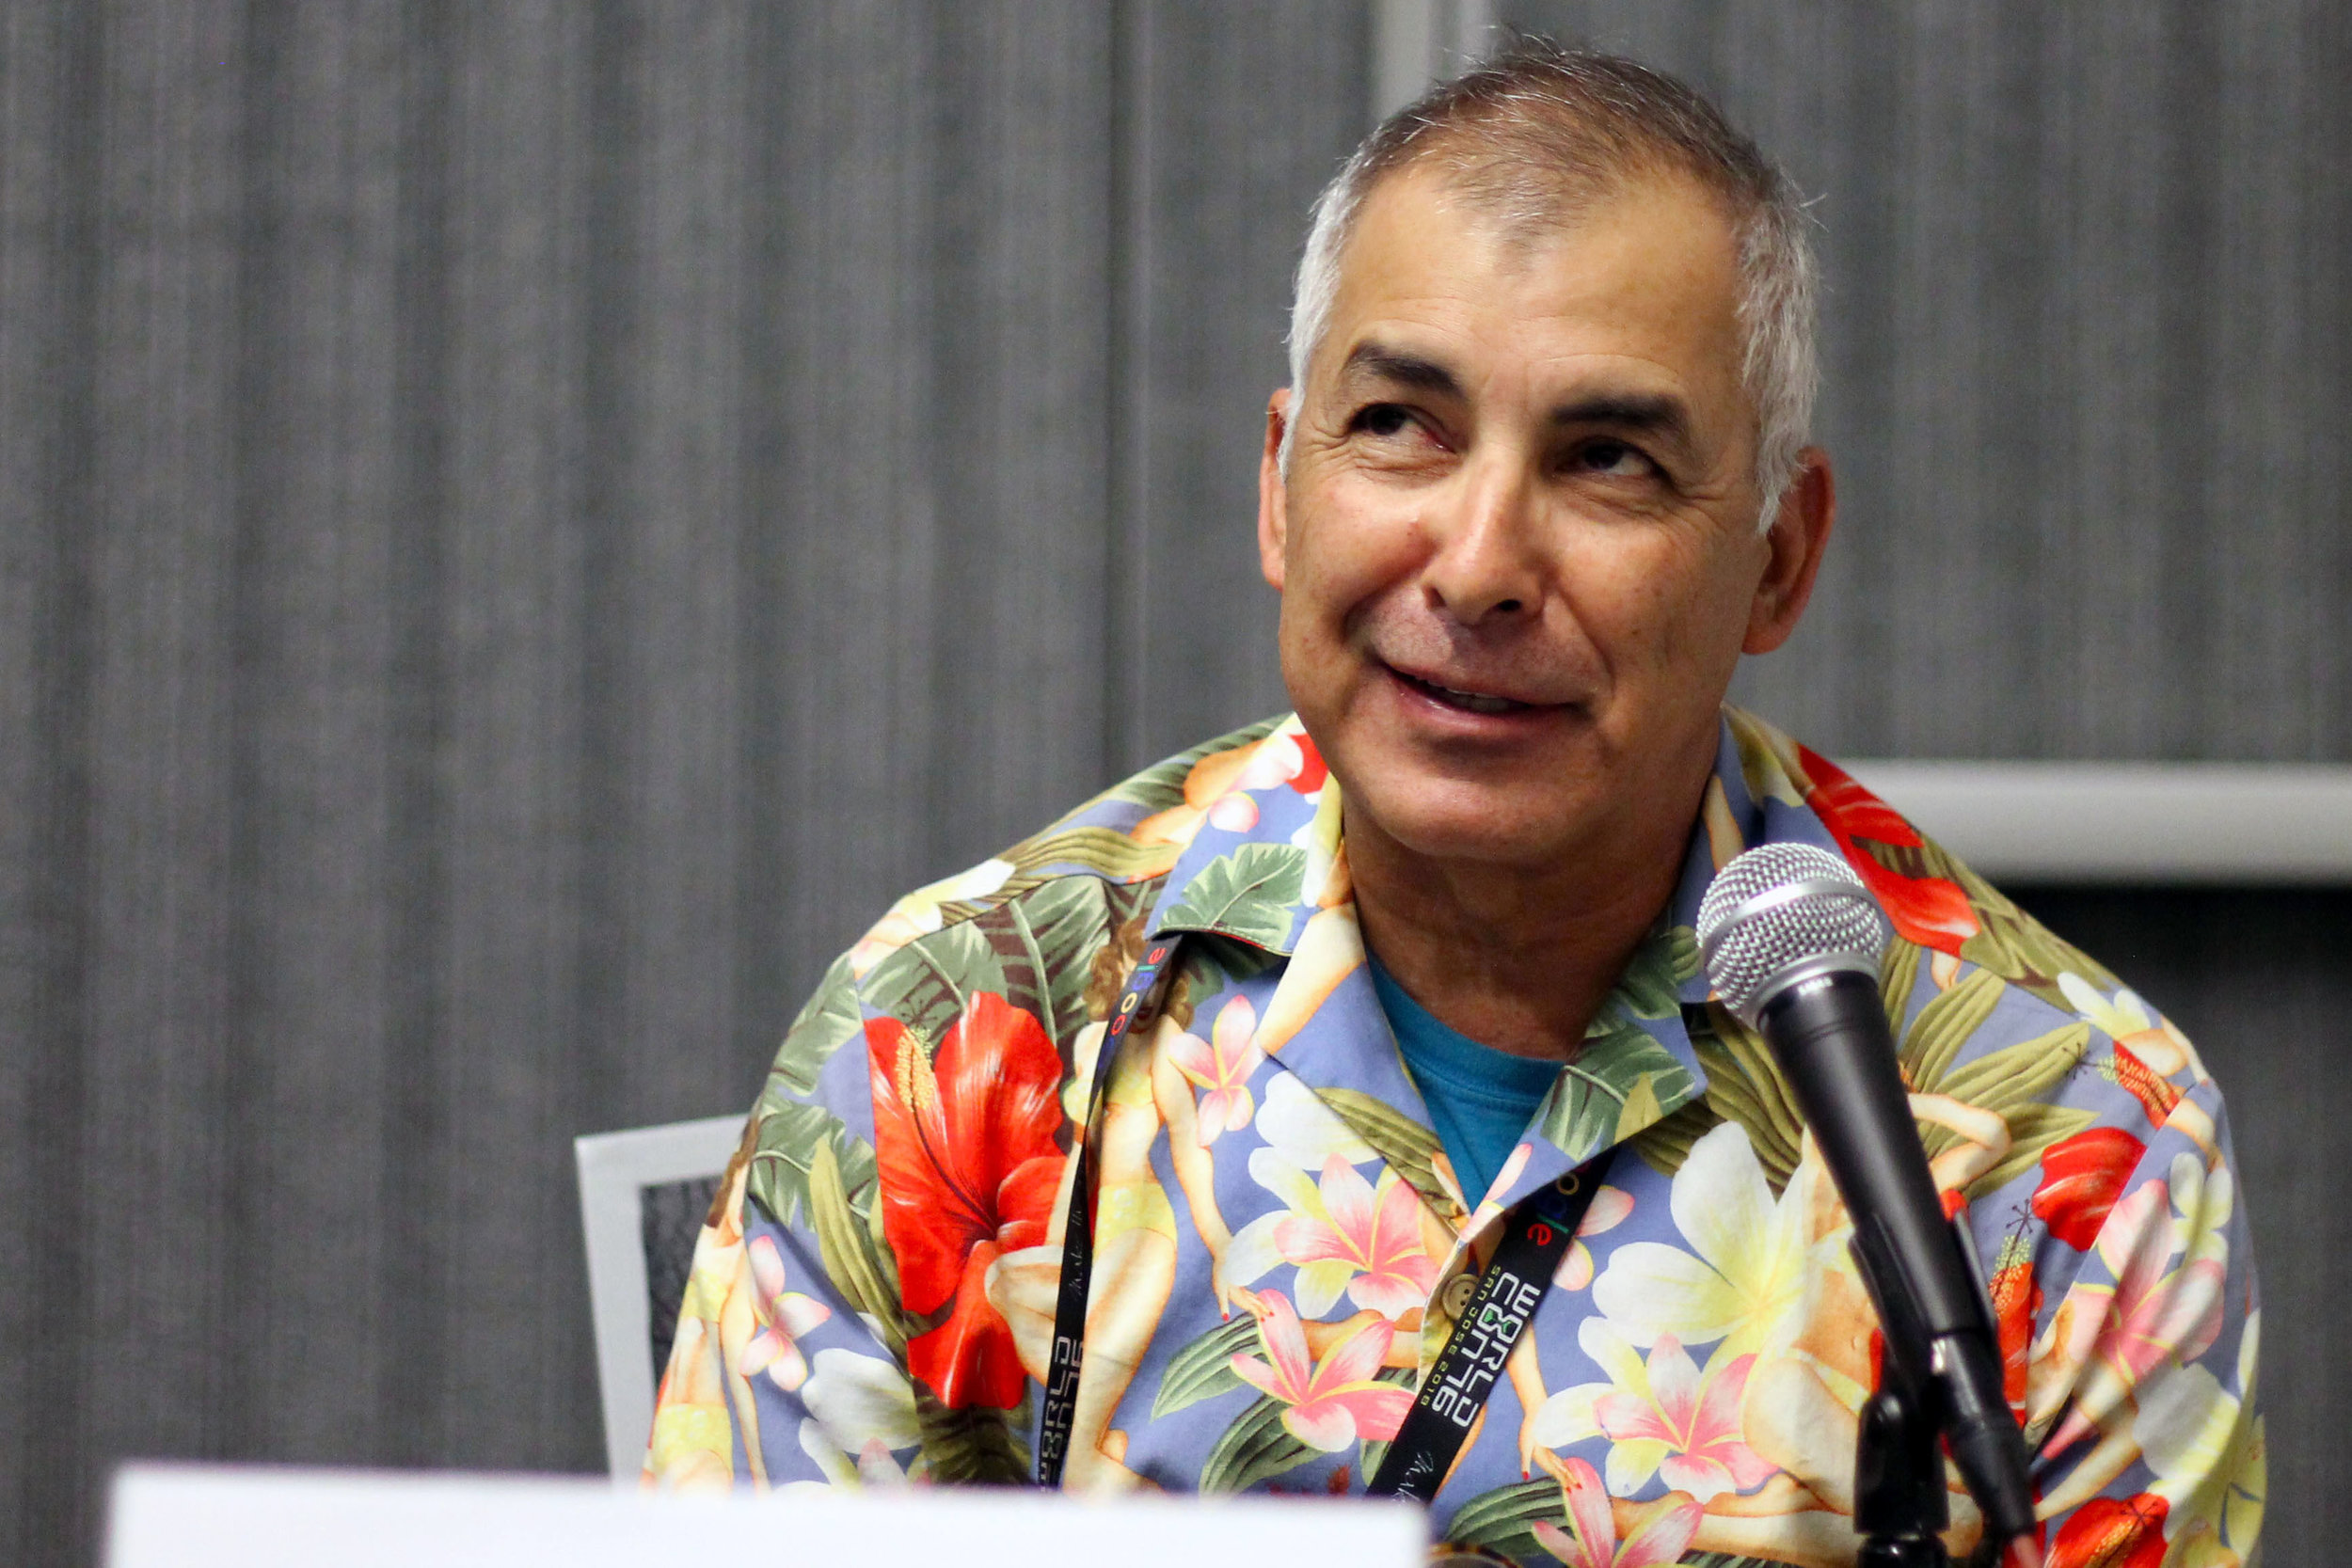 Mario Acevedo on the Beyond the Borders panel (Photo by Julia Rios)